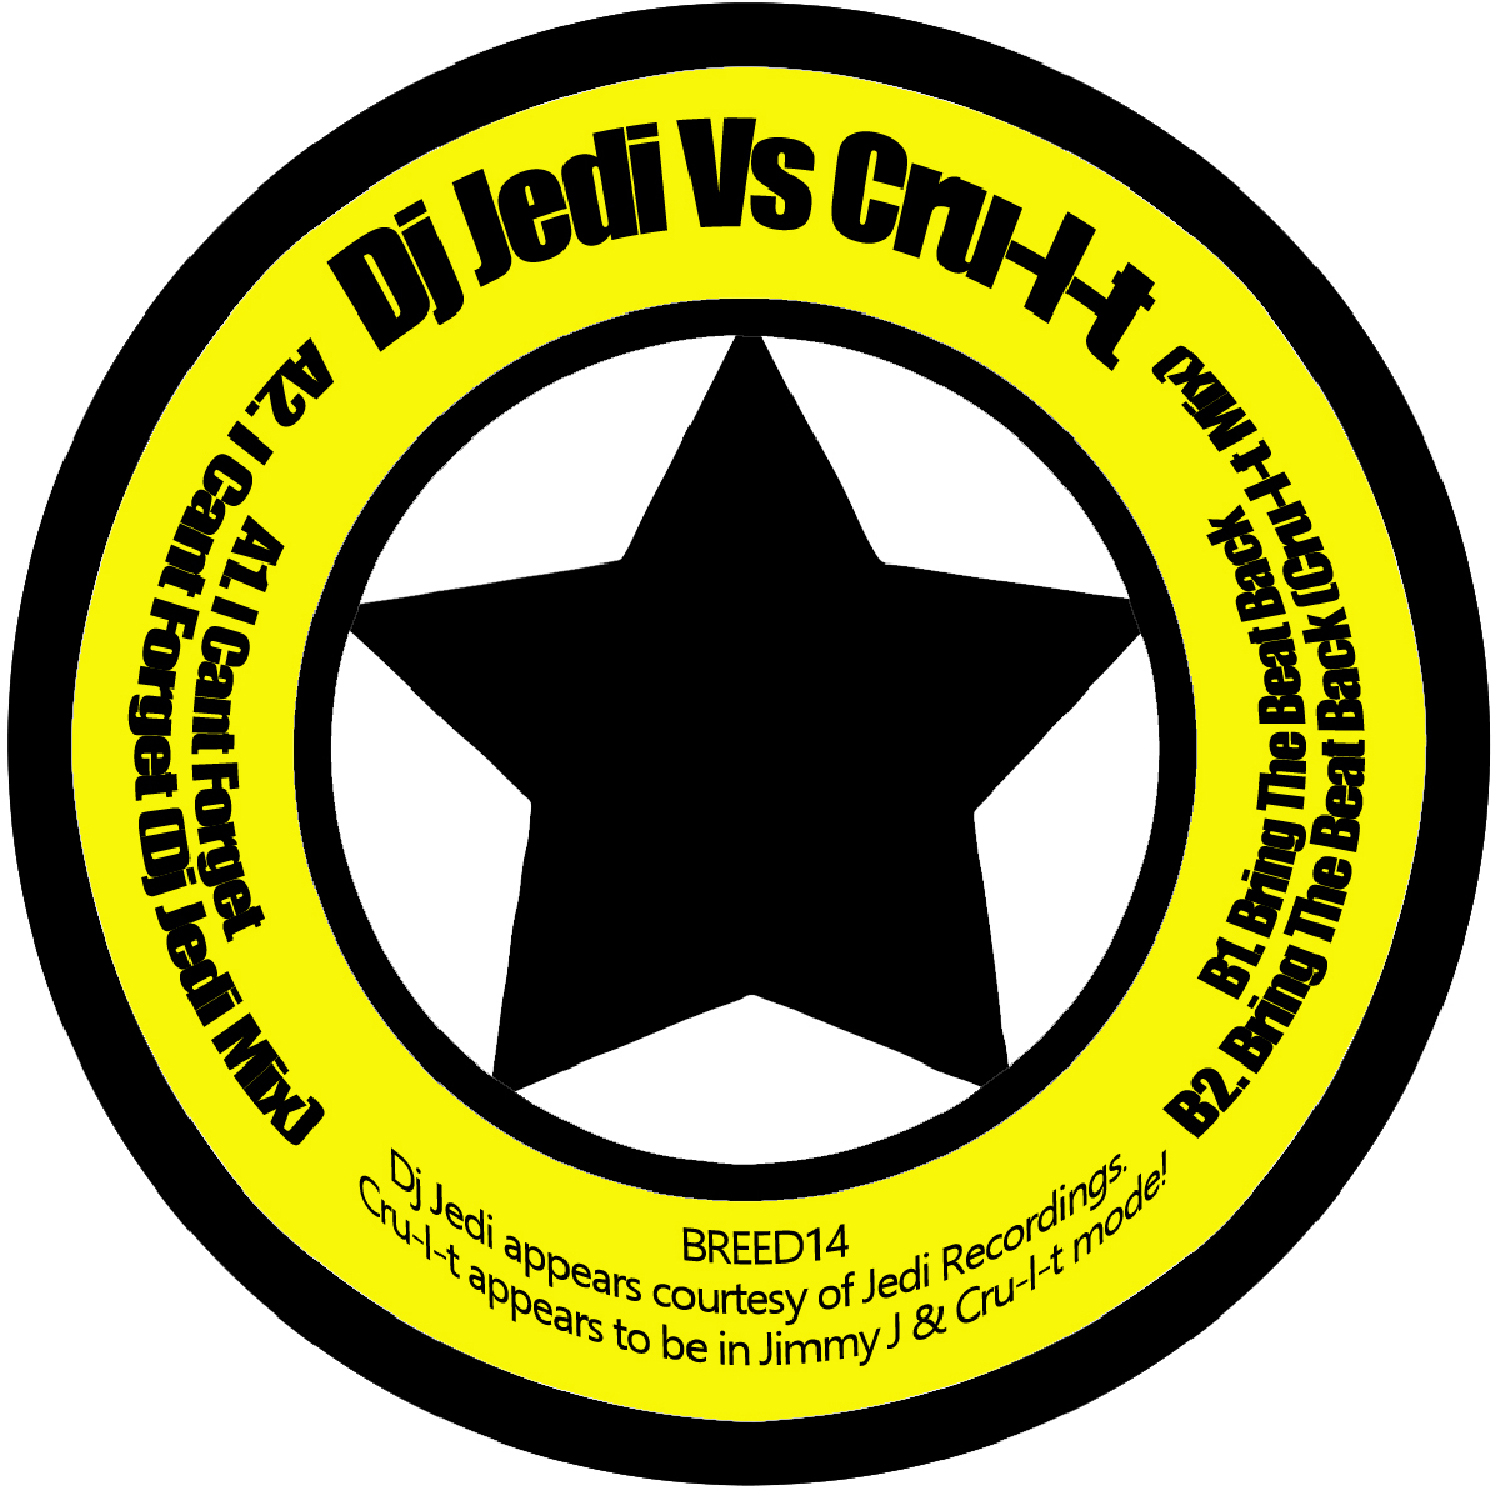 [BREED014] Dj Jedi Vs Cru-l-t - I Cant Forget EP (Digital Only)